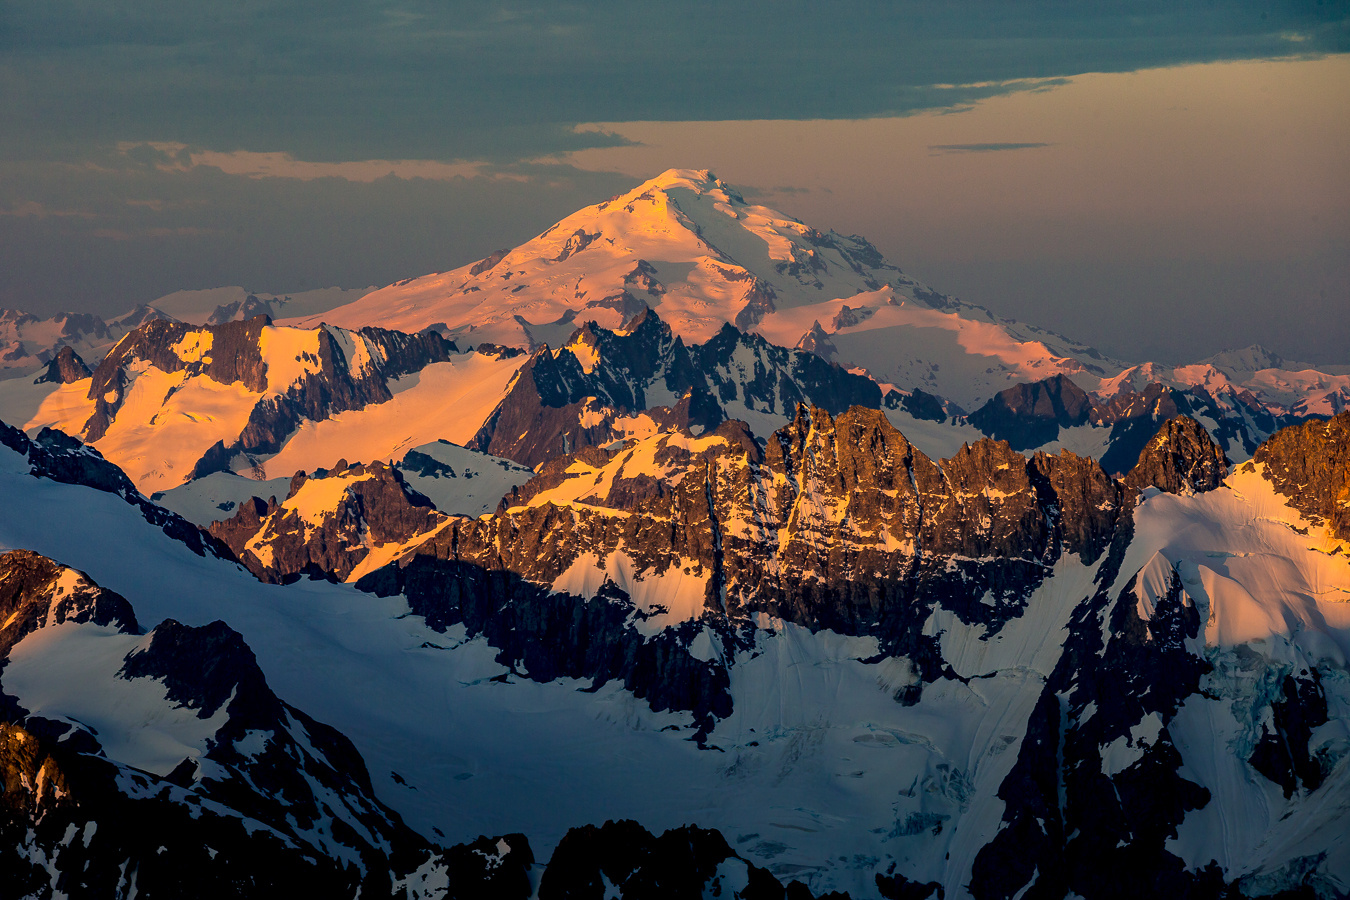 Glaciers and Peaks by Colton Jacobs